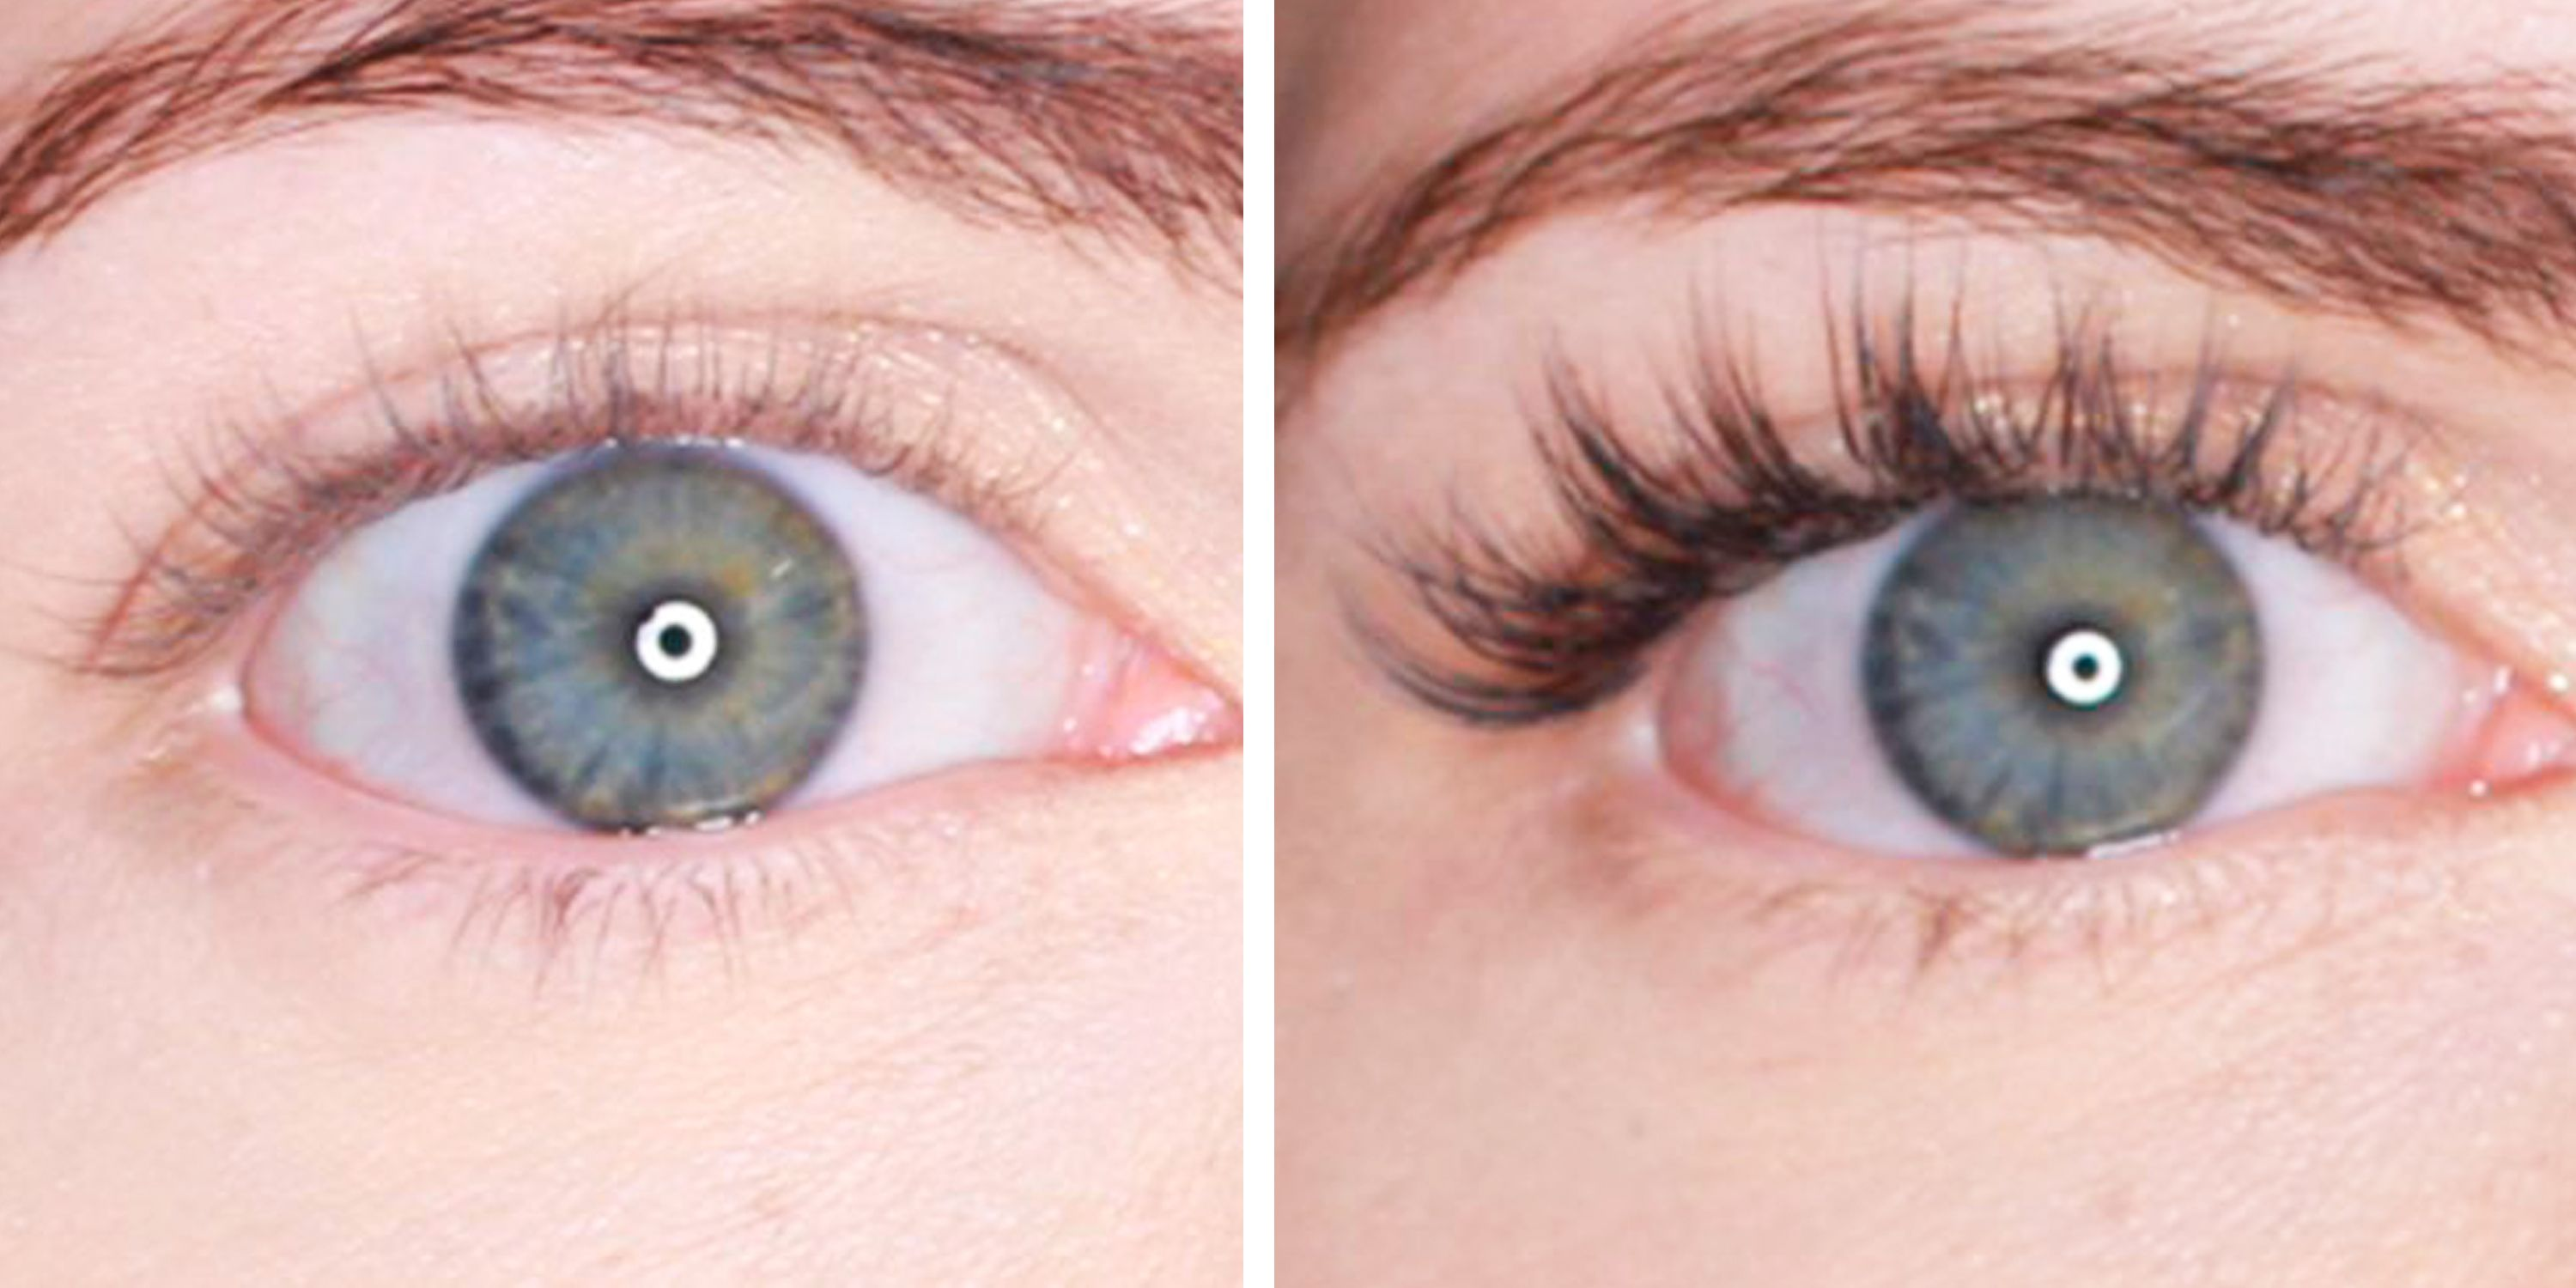 8b3af130d5b Eyelash extensions - everything you need to know. FAQs about eyelash  extensions